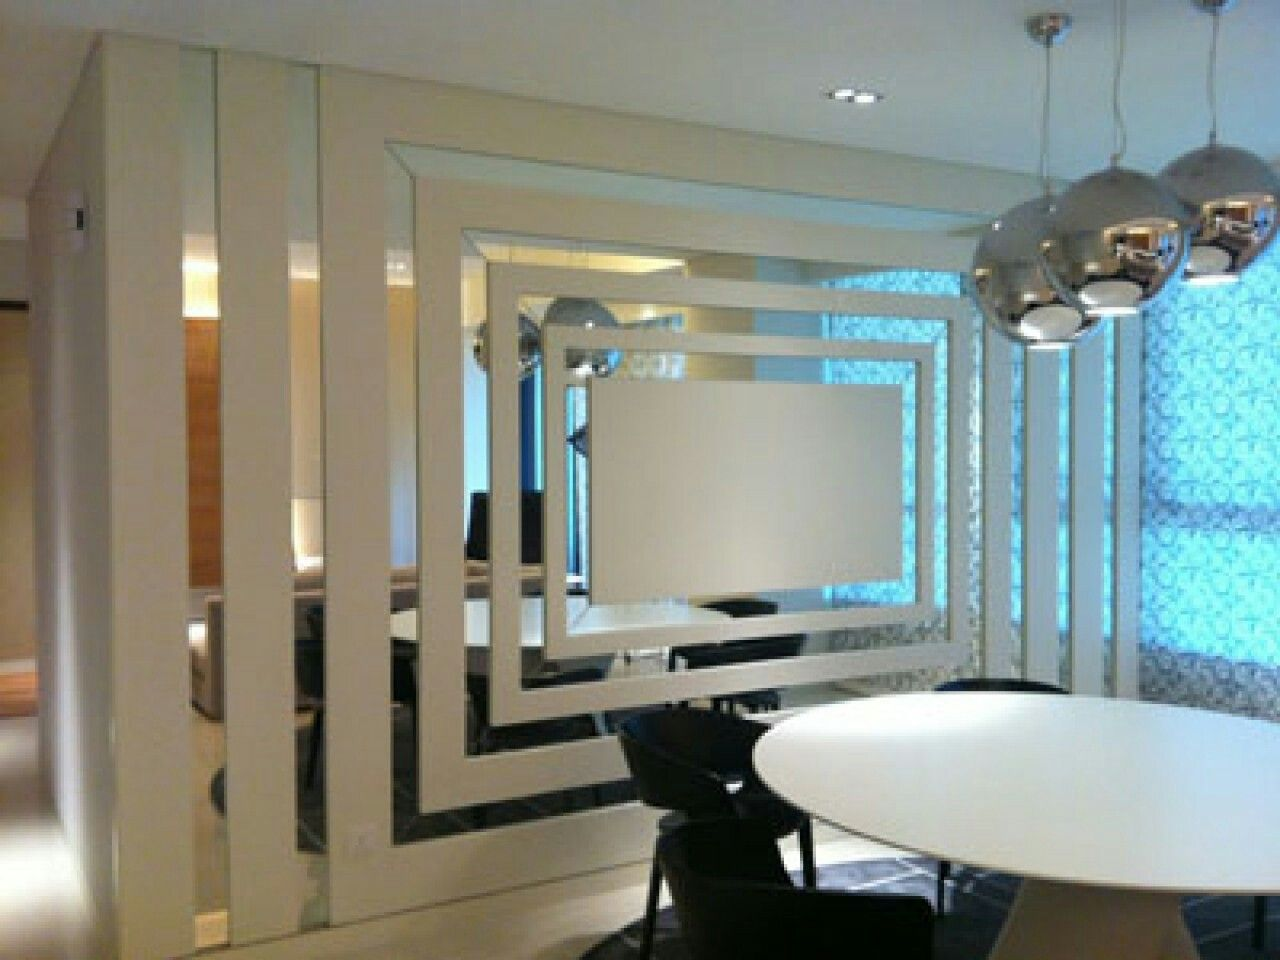 Pin By Hakan Syukur On Mirrors Mirror Design Wall Mirror Wall Decor Mirror Decor